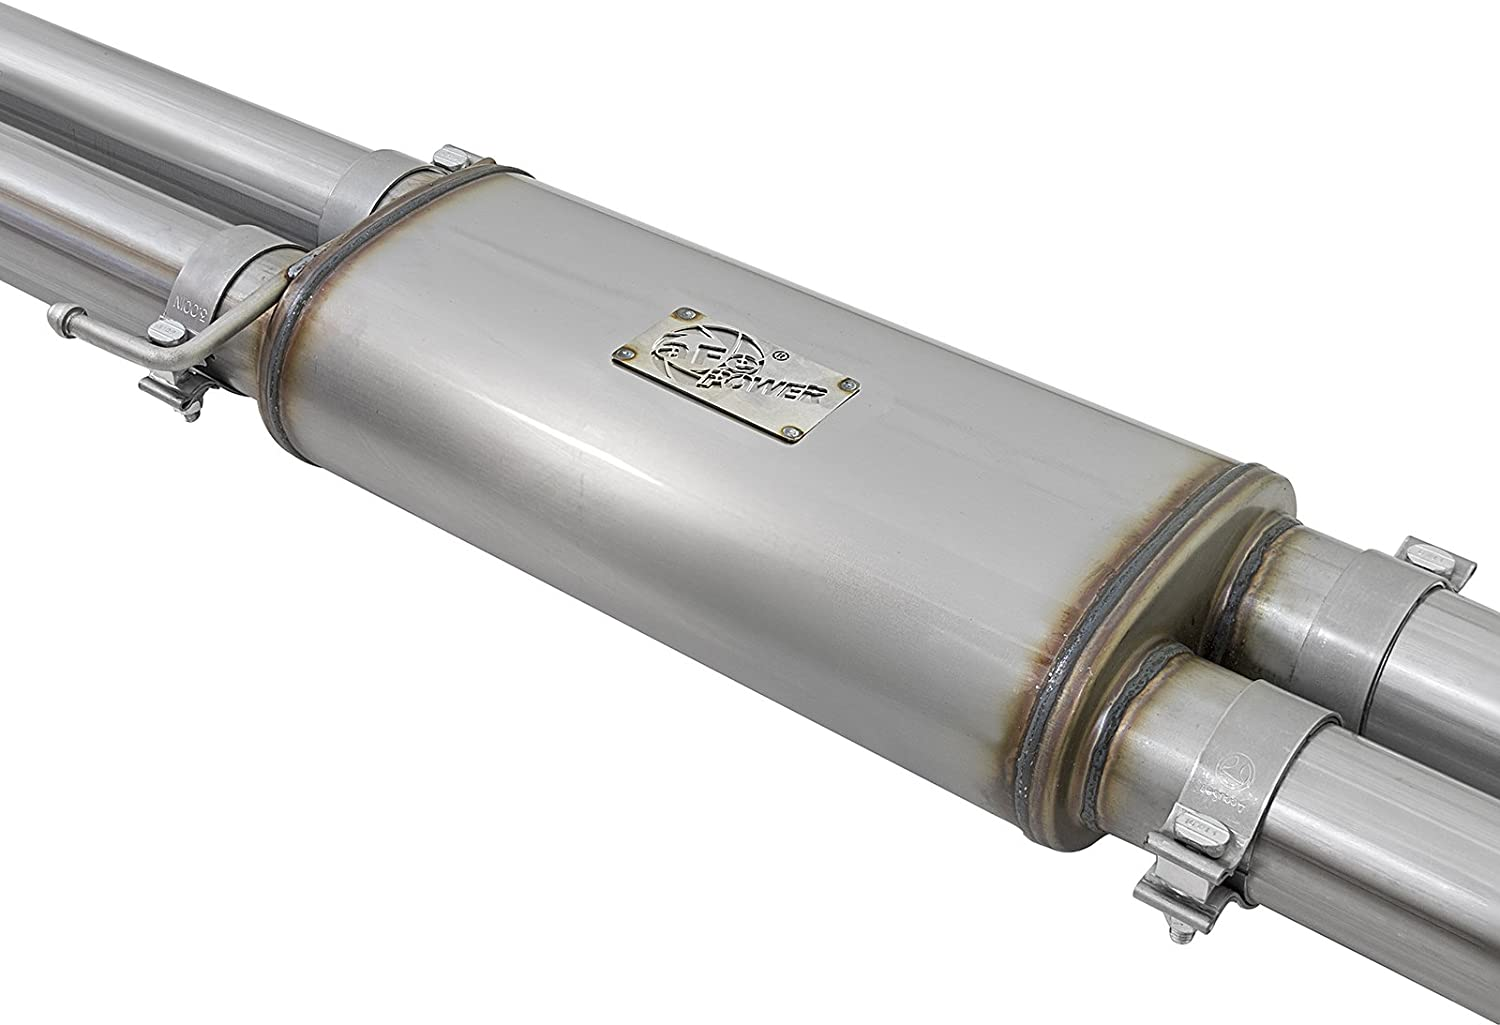 aFe Power MACH Force-Xp 49-43045-B Exhaust System for Ford Raptor 3, Cat-Back, Stainless Steel